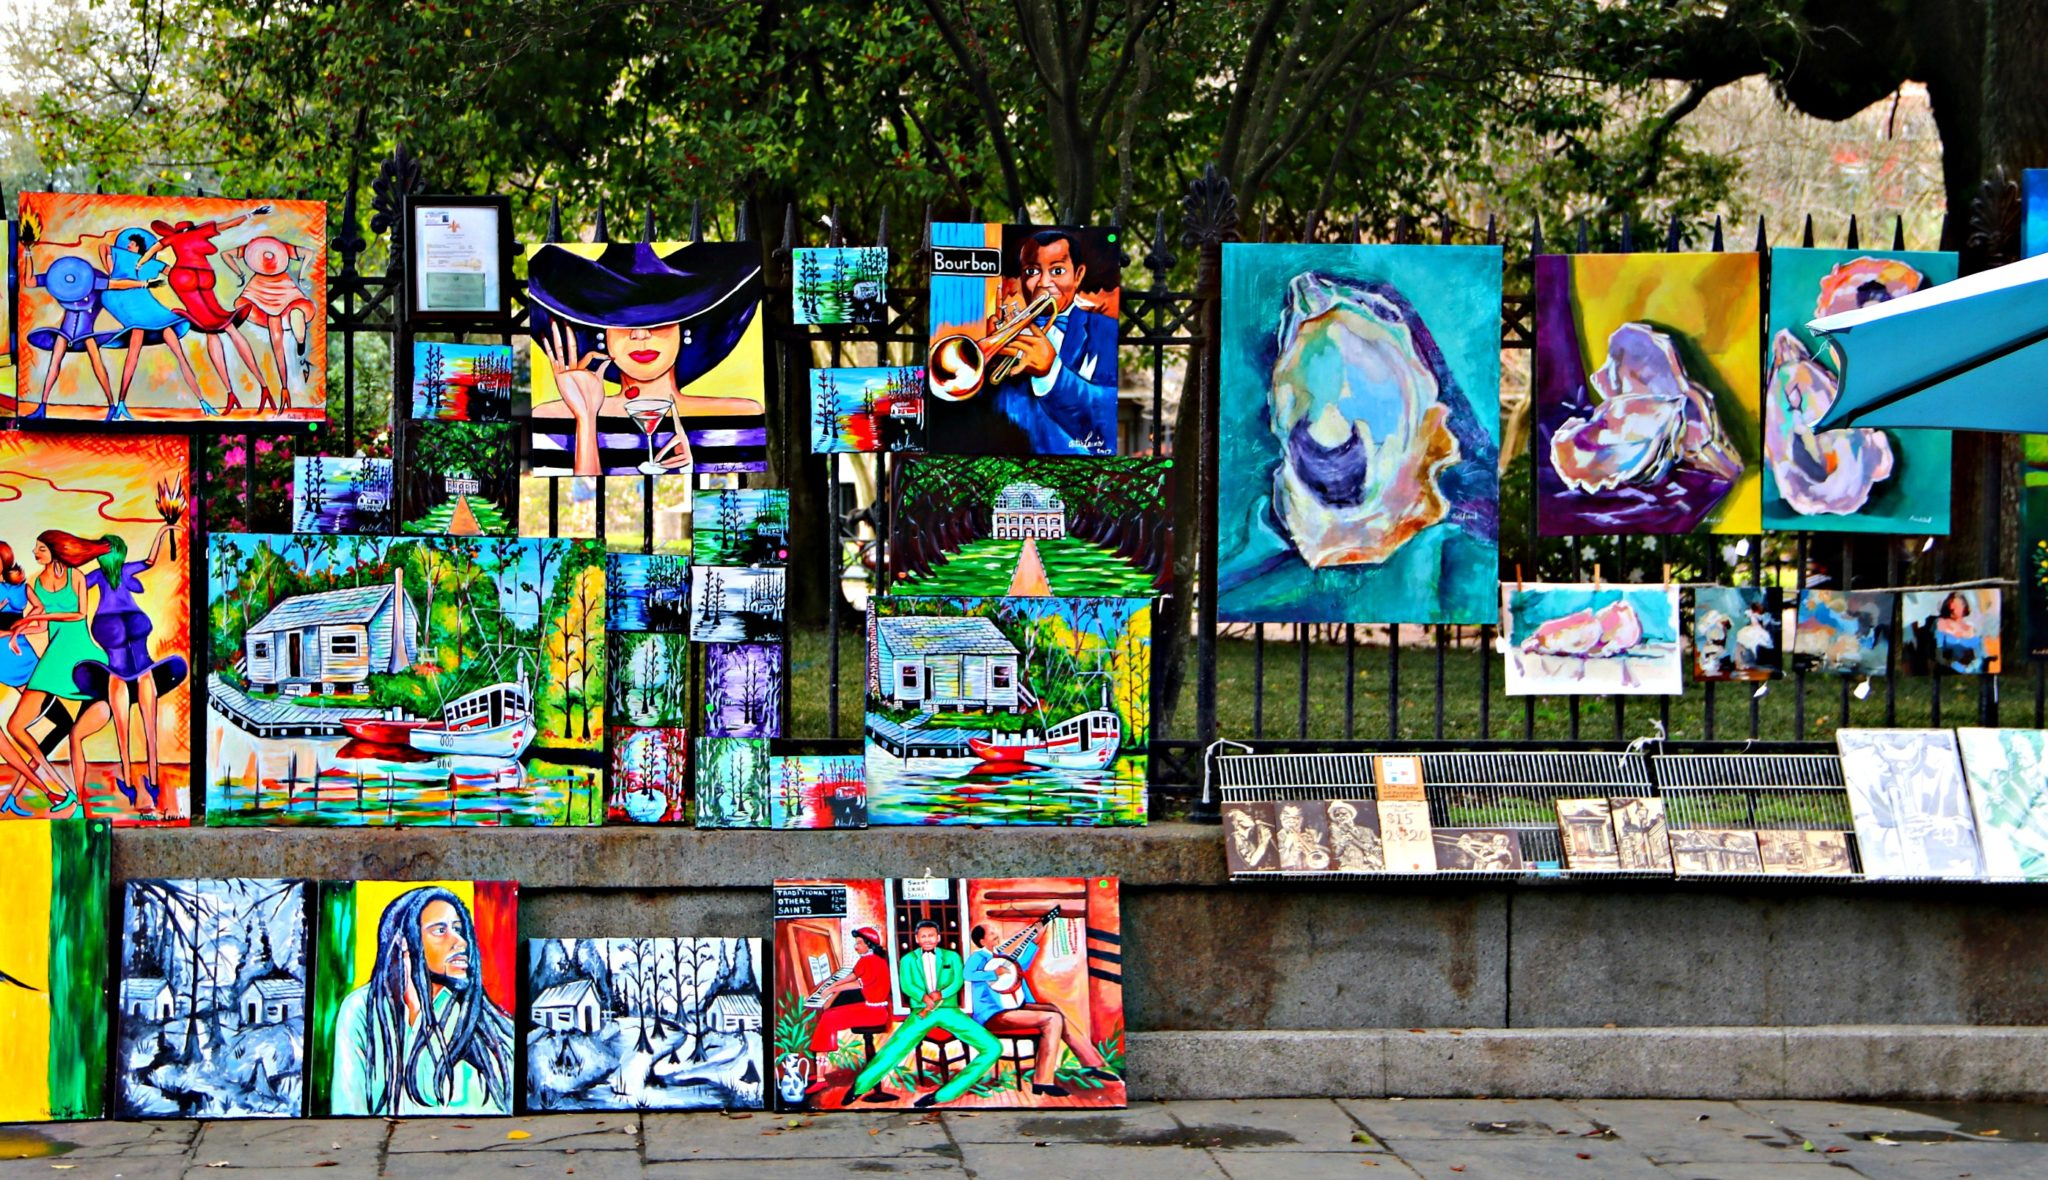 Jackson Square Artist selling their work